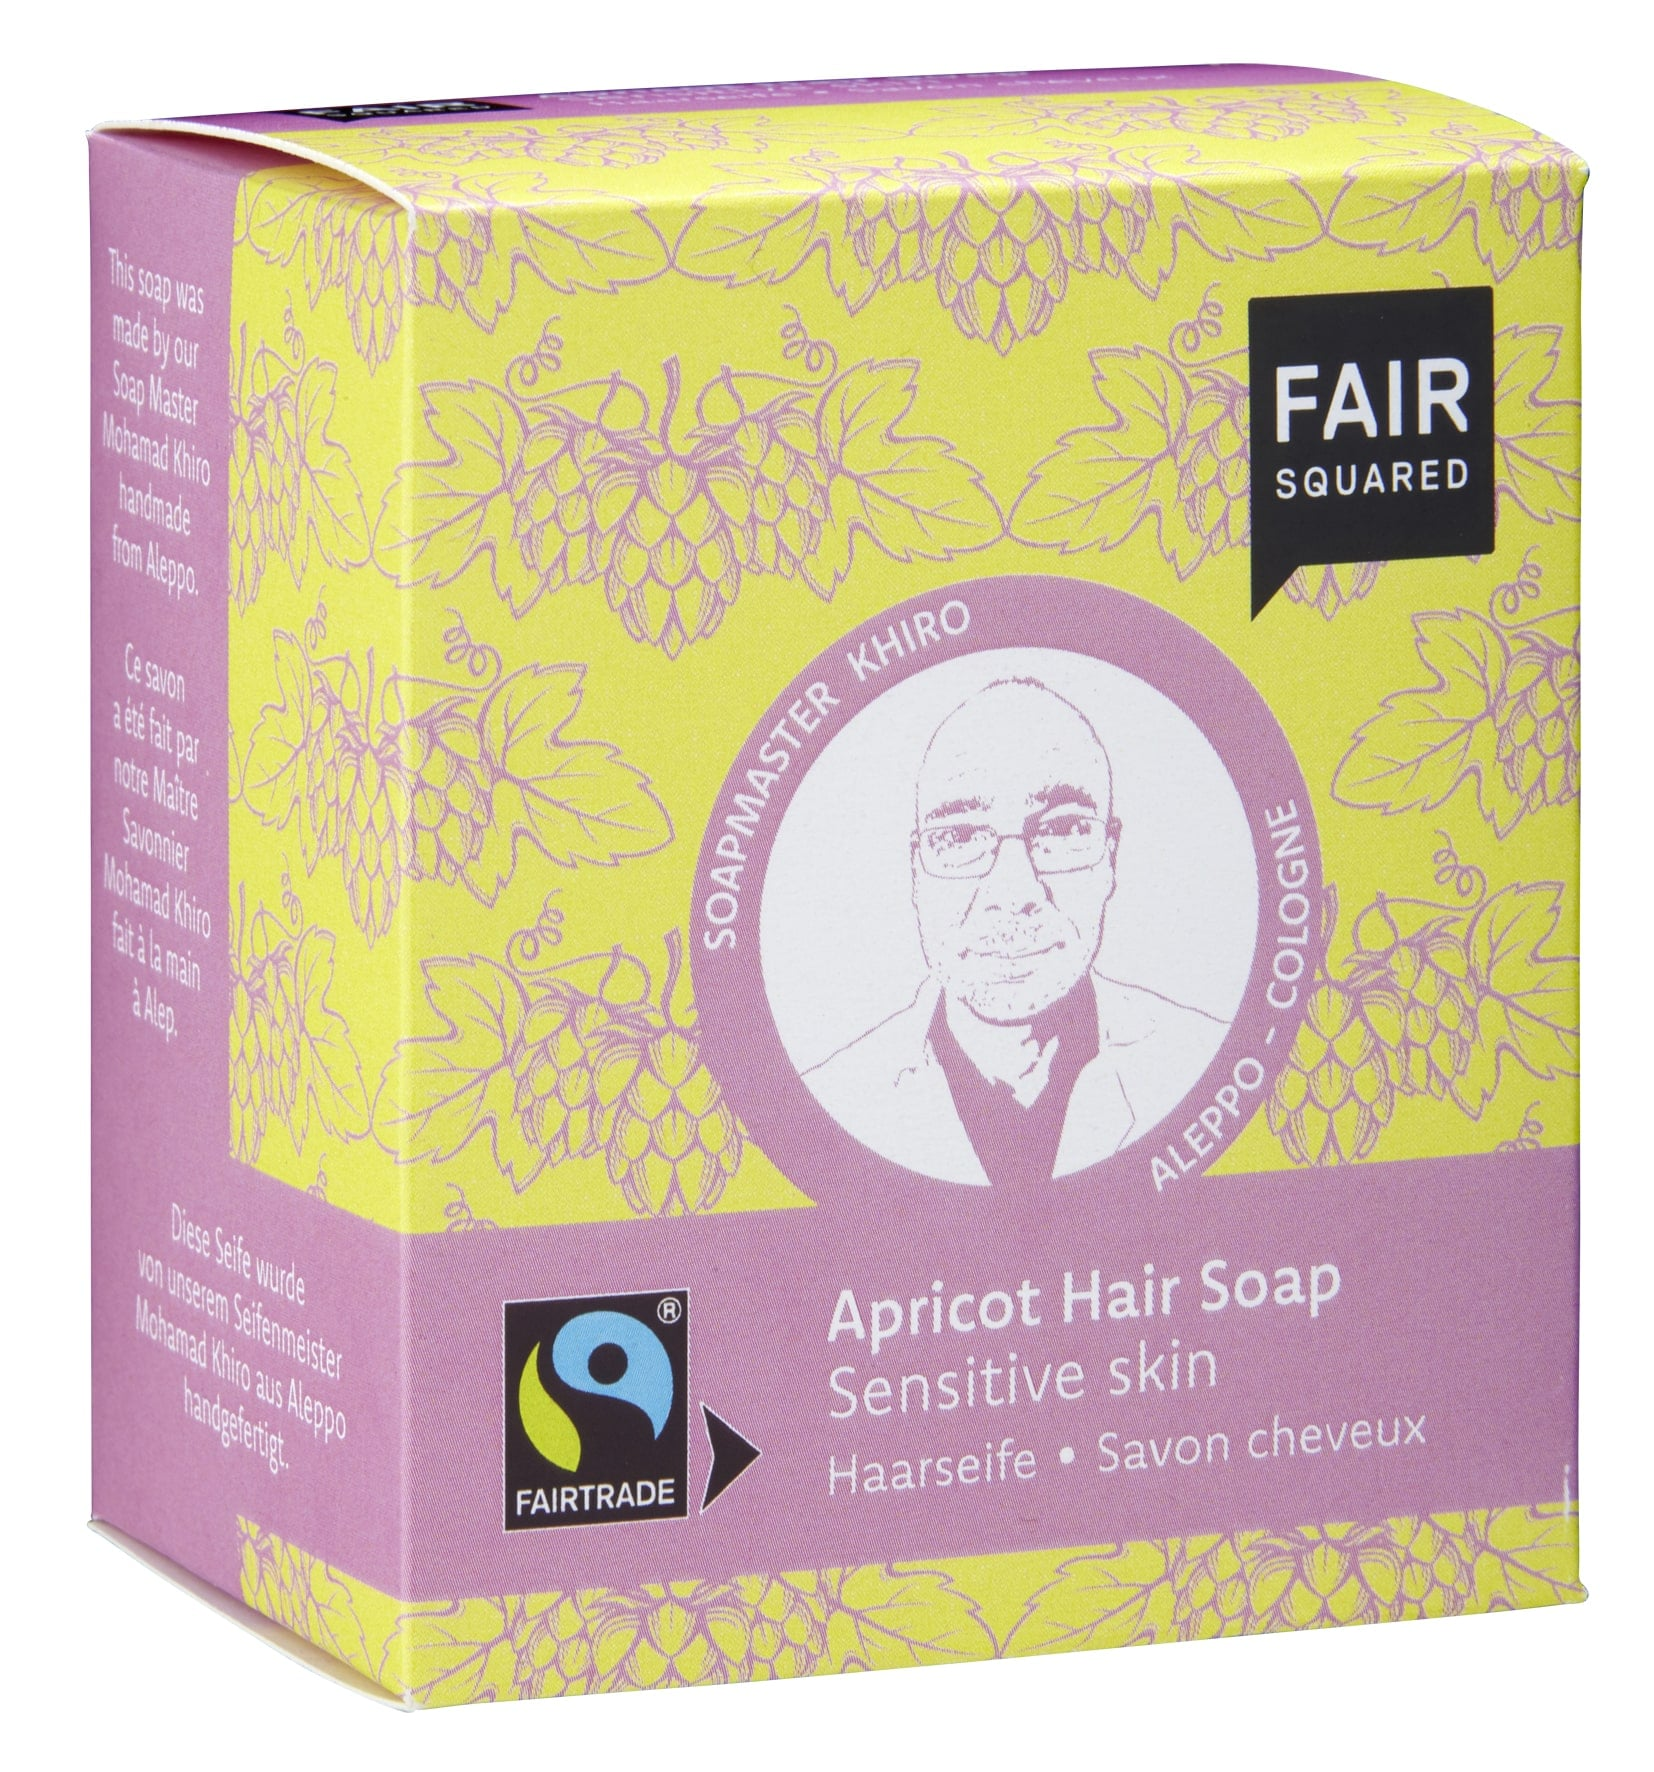 Apricot Hair Soap Sensitive Skin